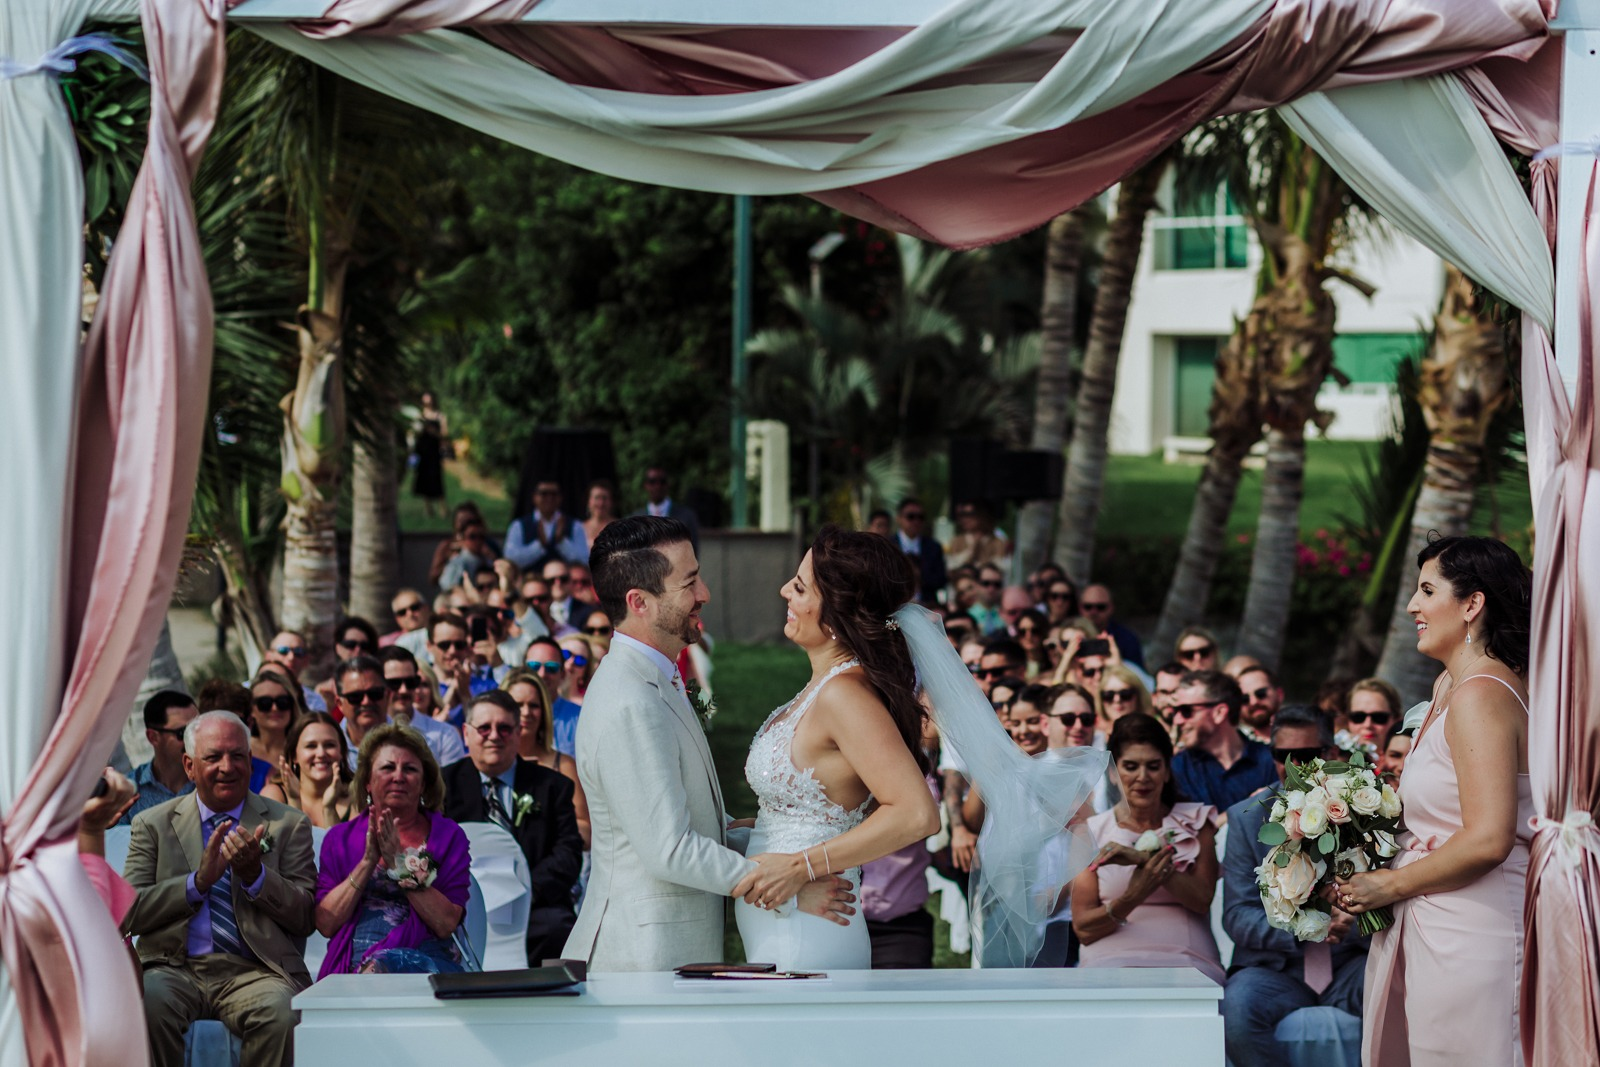 wedding-ceremony-bride-groom-moment-smile-ceremony-guest-marriot-vallarta-pier